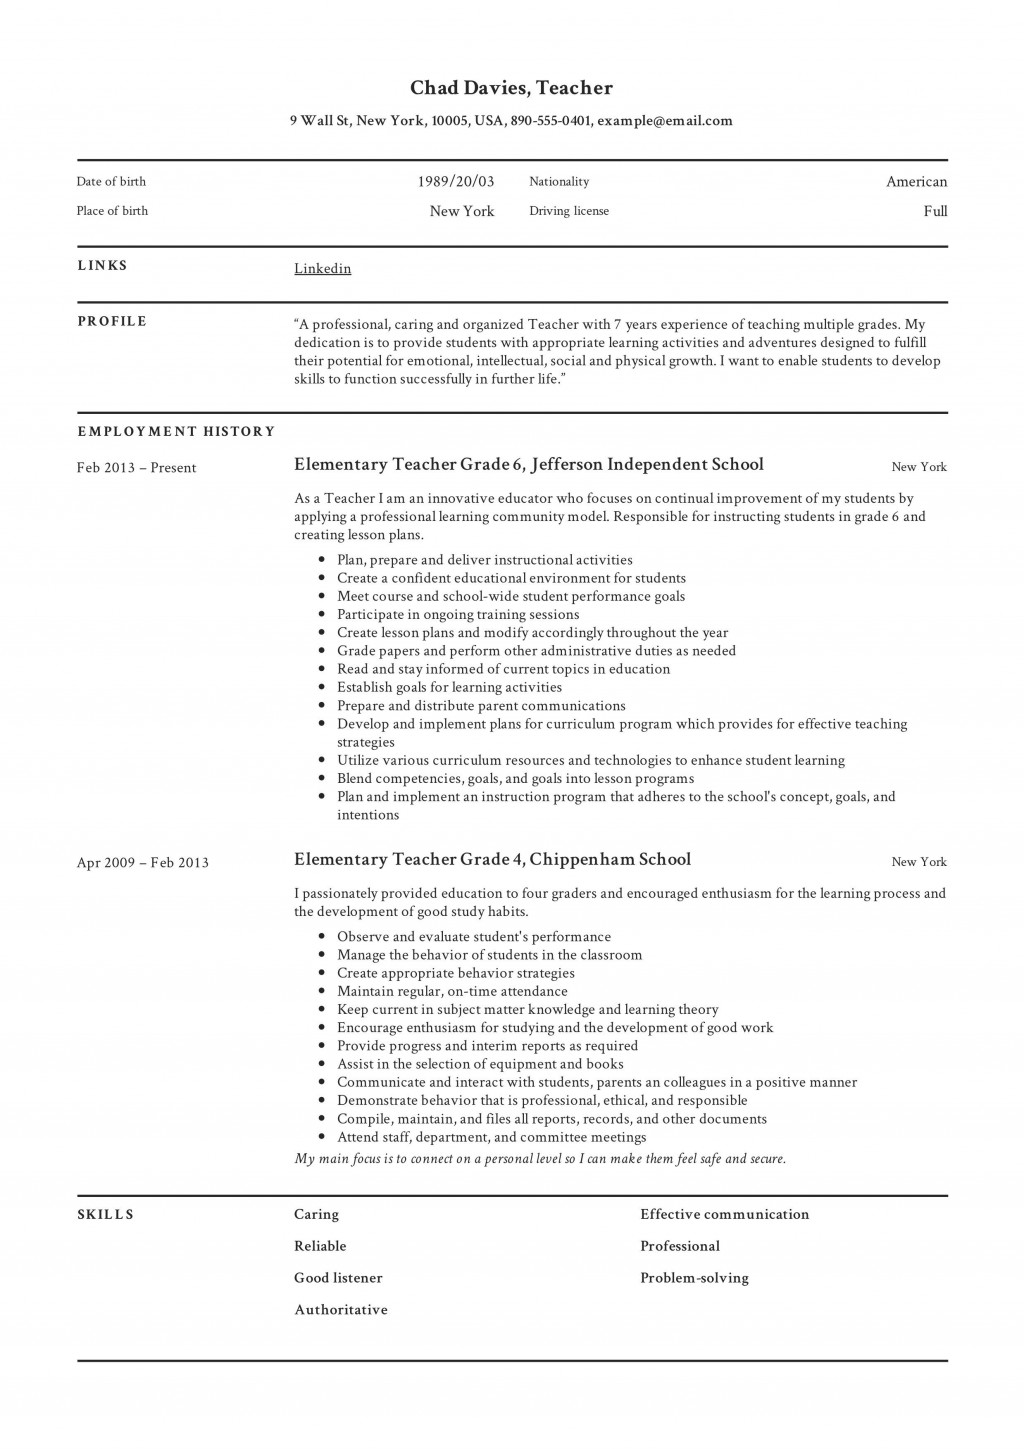 003 Frightening Good Resume For Teaching Job High Definition  Sample Teacher Fresher In IndiaLarge